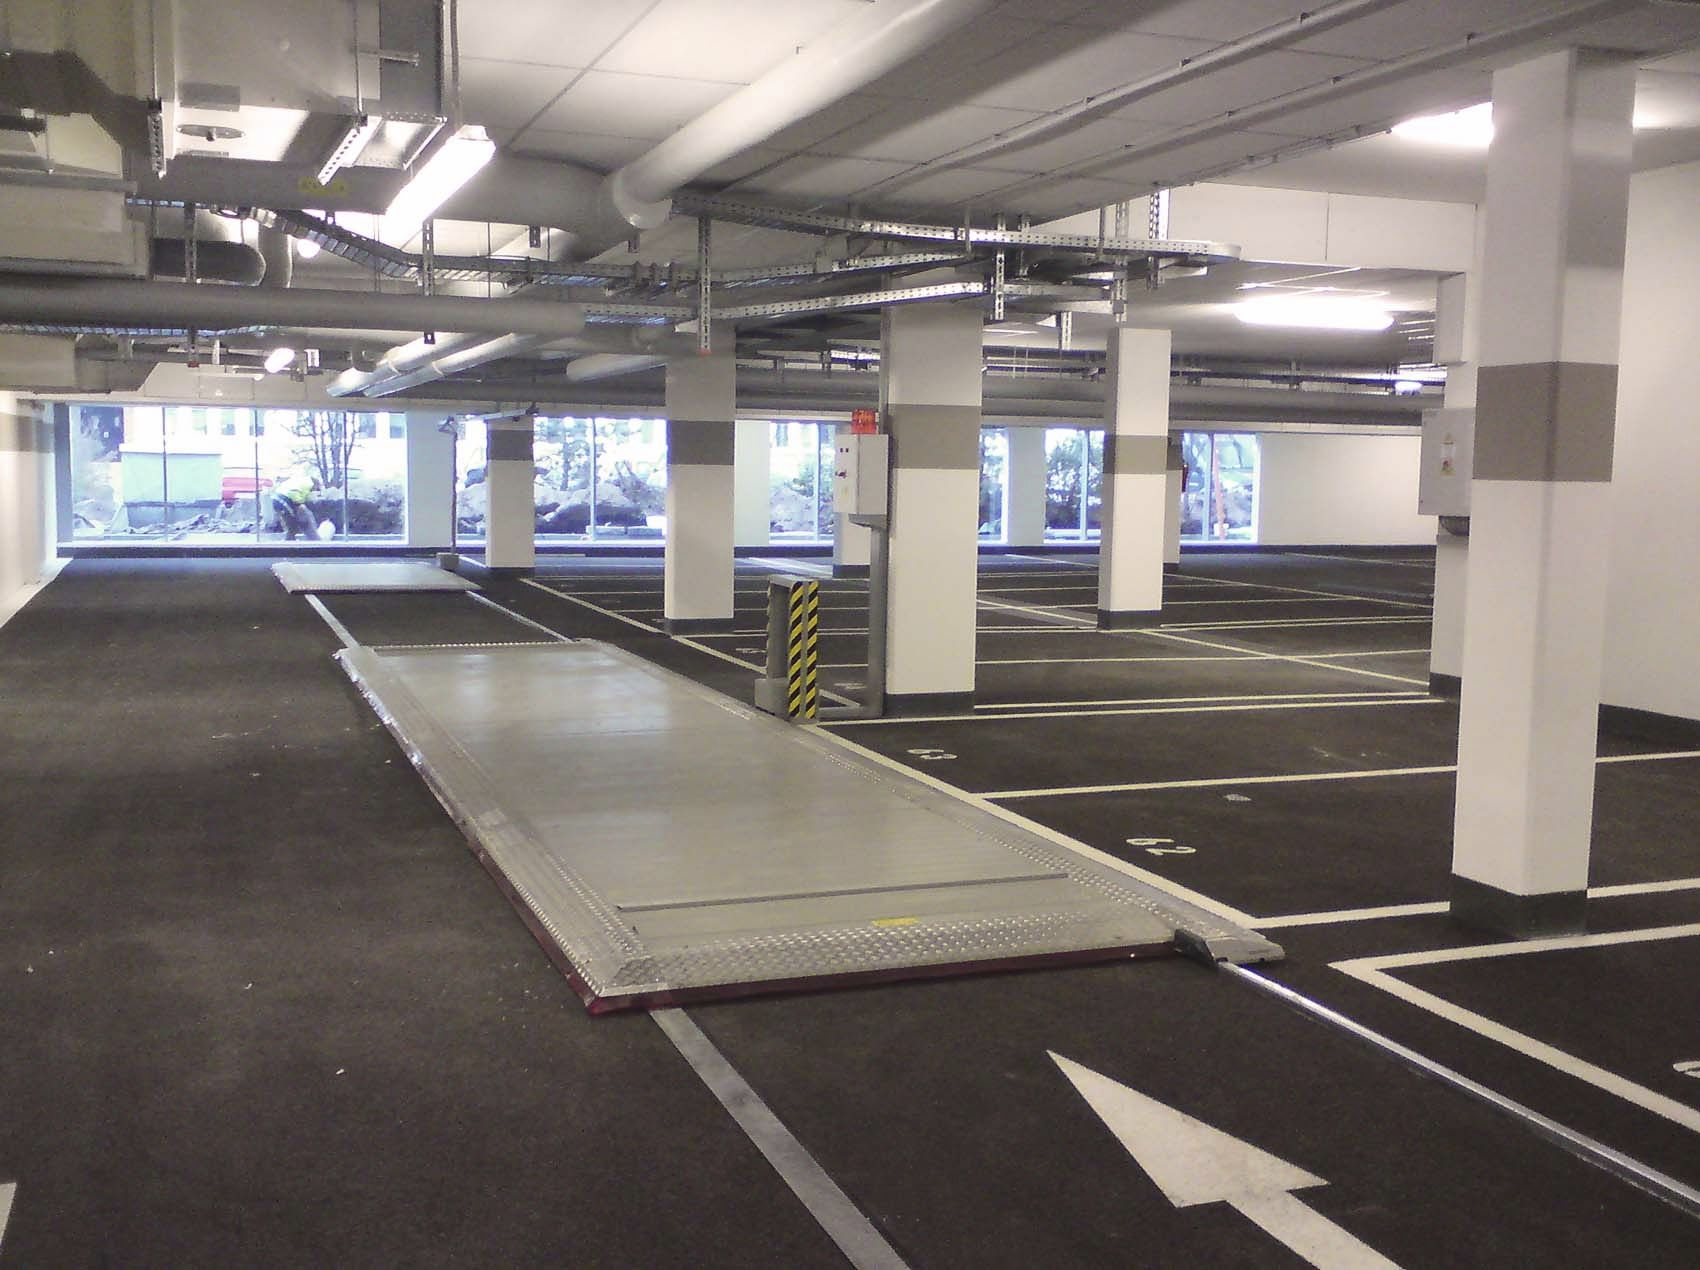 J ai le garage id al gr ce la location parking strasbourg - Comment acheter un parking ...